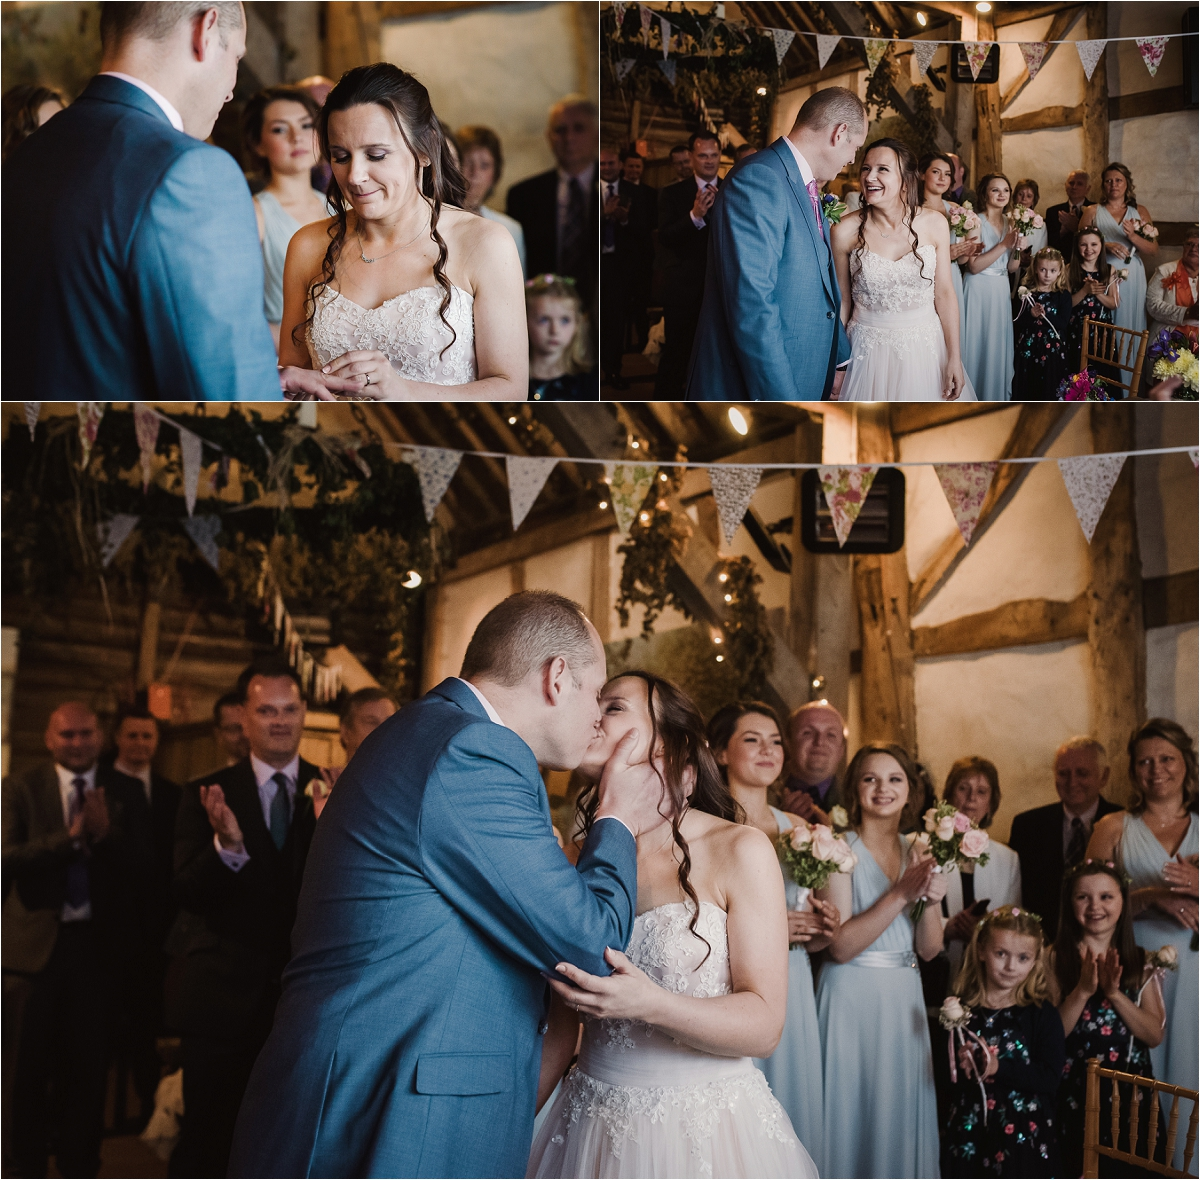 chris_emma_wedding_the_Fleece_inn_0031.jpg